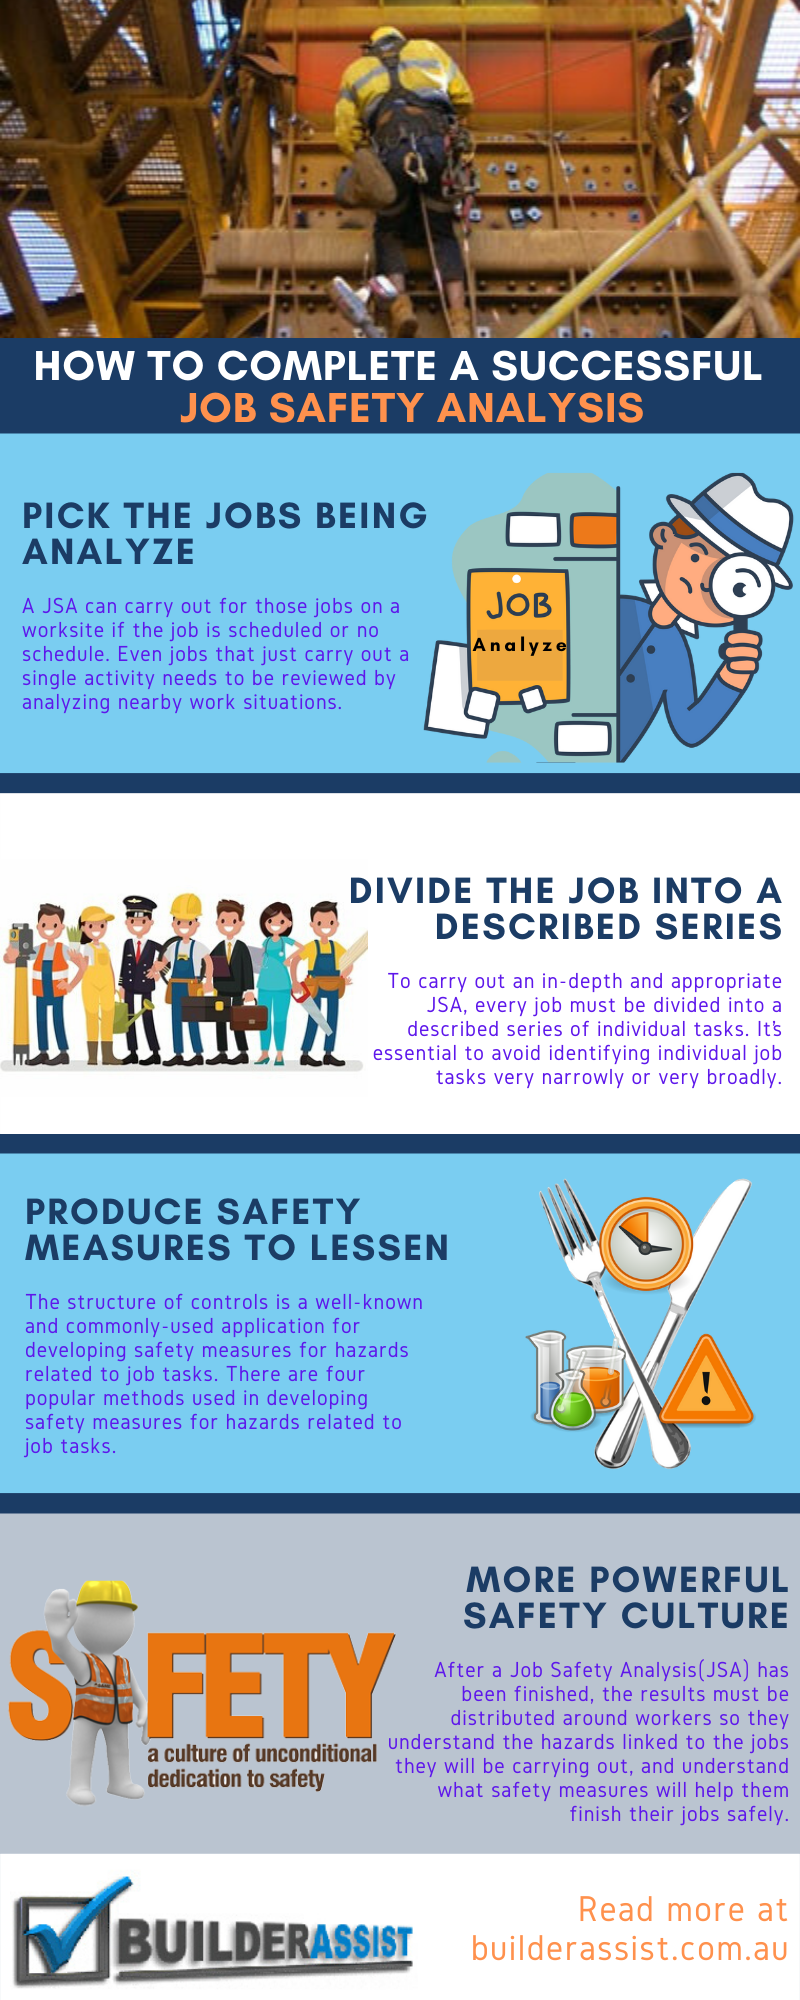 How to Complete a Successful Job Safety Analysis